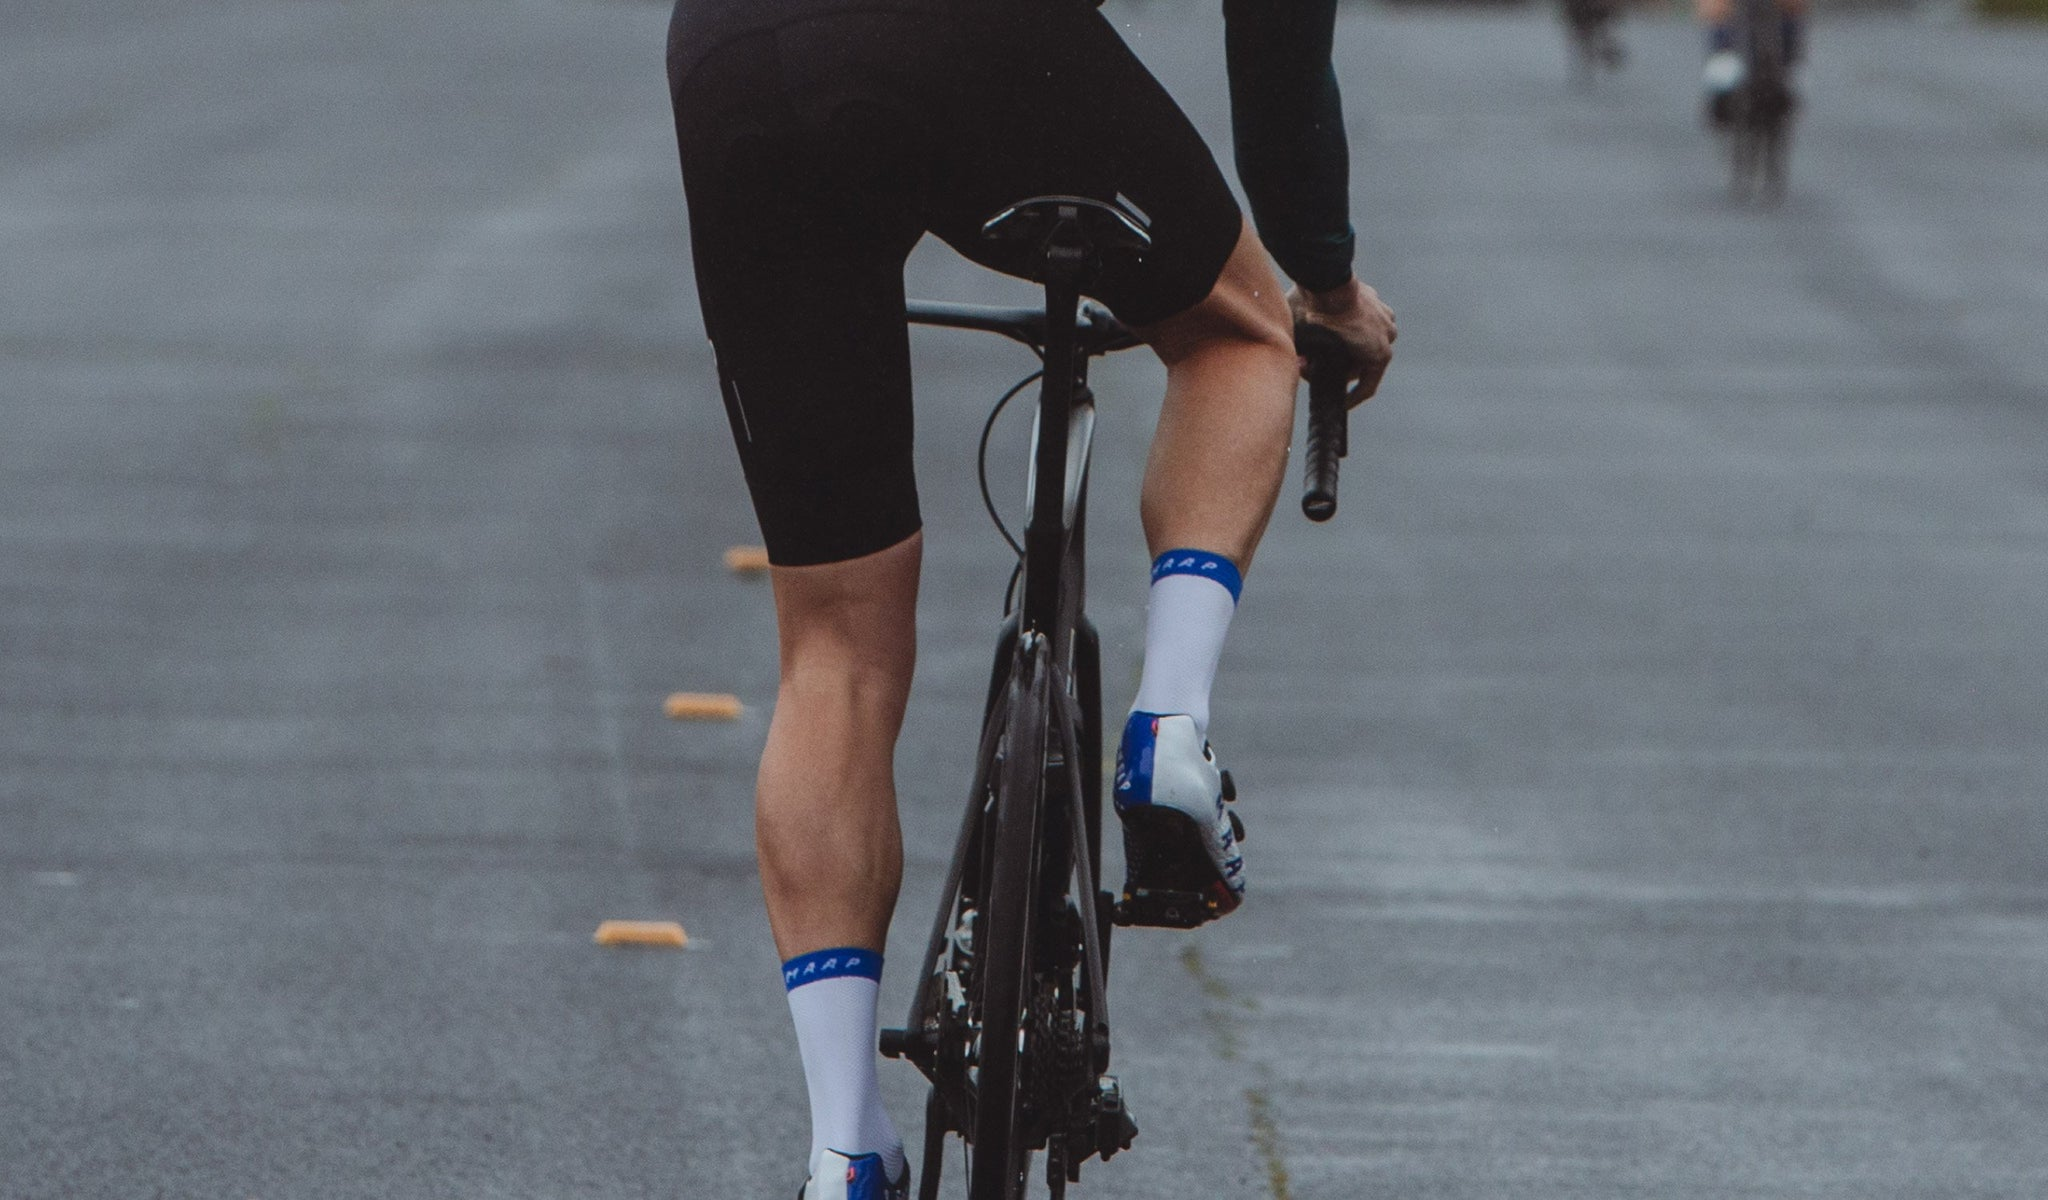 MAAP Pro Air Cycling Socks in White for riding in warm conditions.